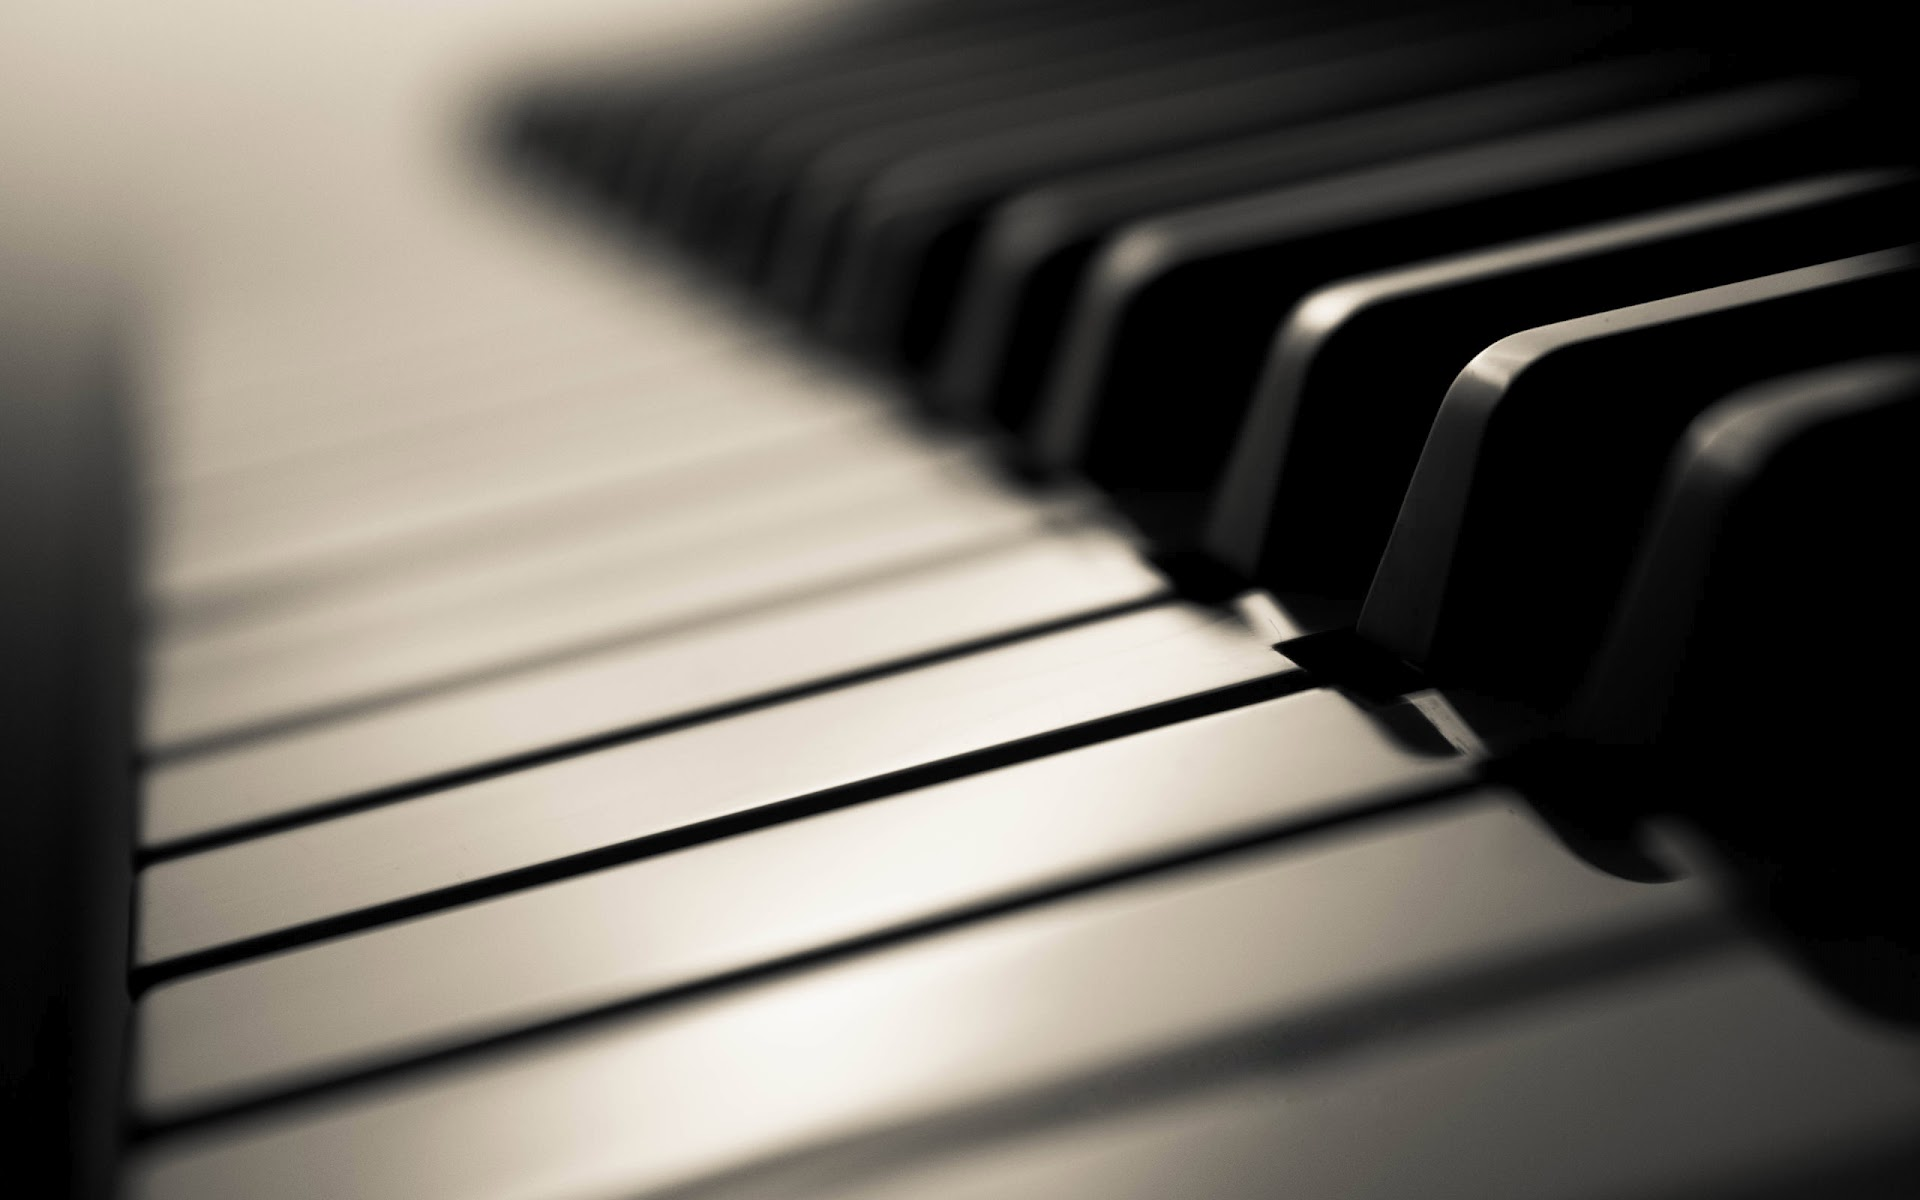 piano hd wallpaper background image 1920x1200 id 294651